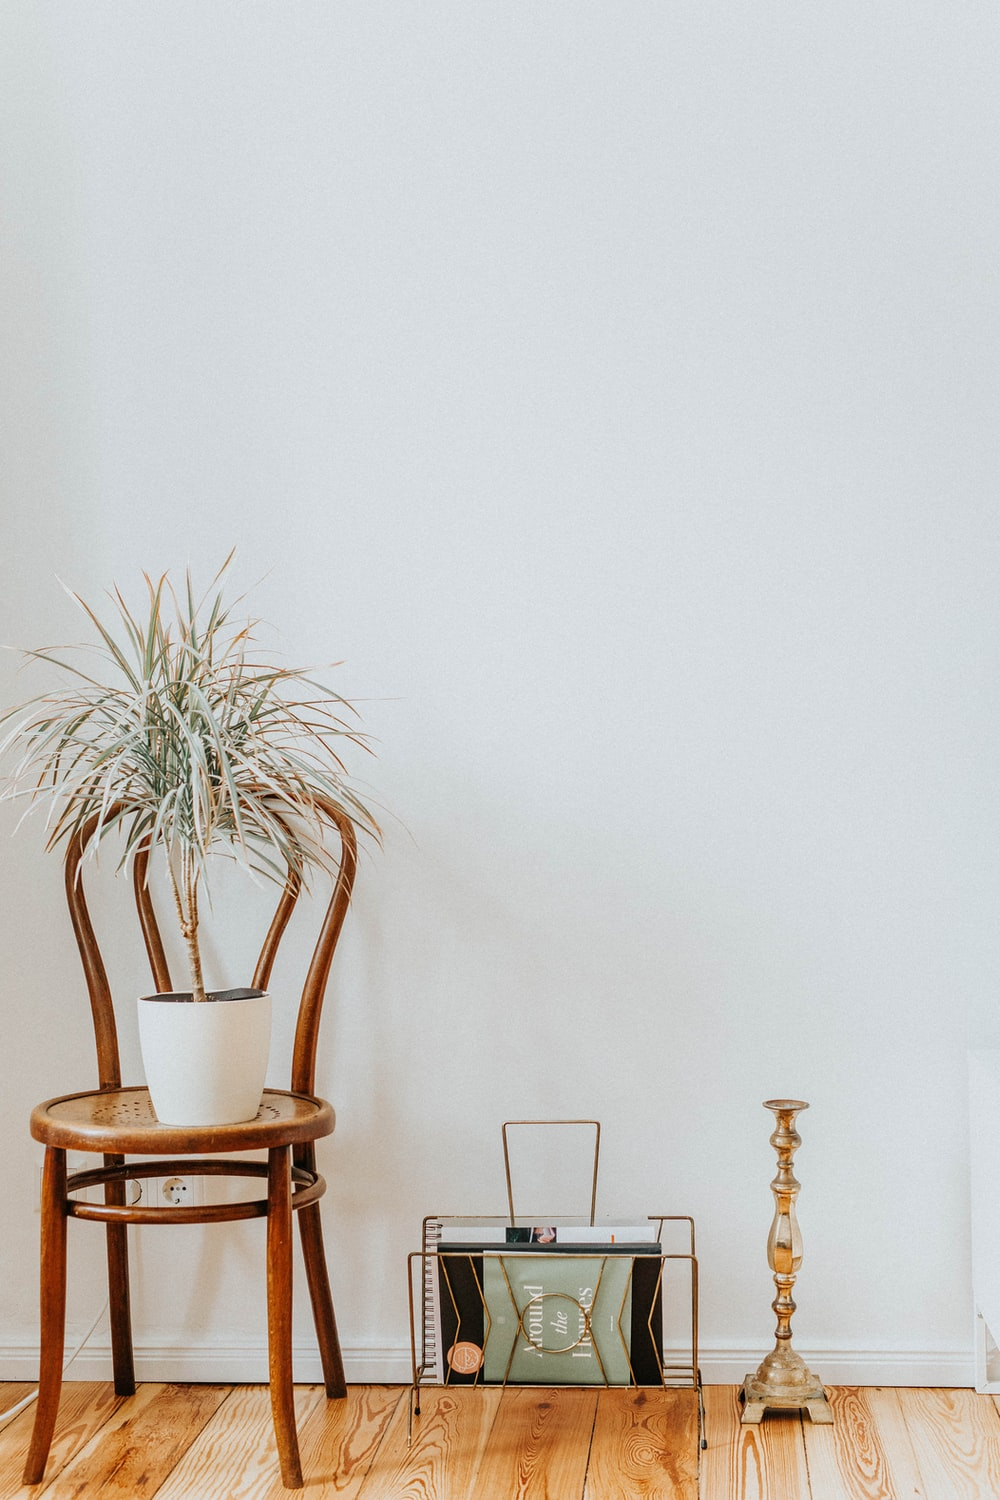 green plants on brown wooden chair